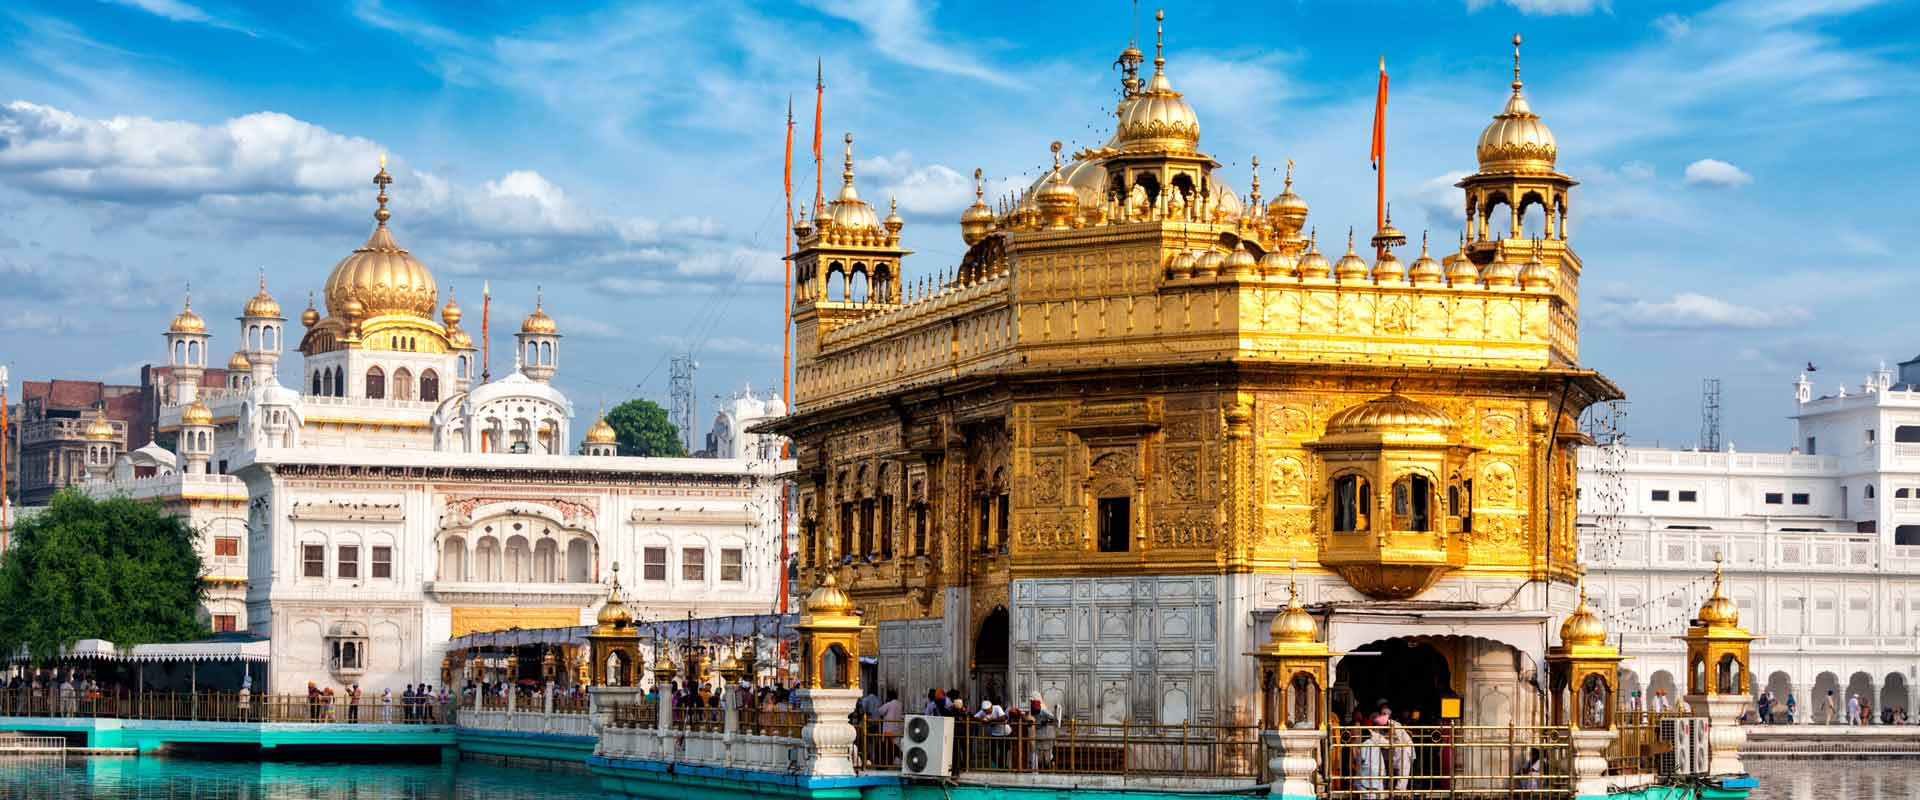 Himachal And Golden Temple 12 Days And 11 Nights | Tour Package India